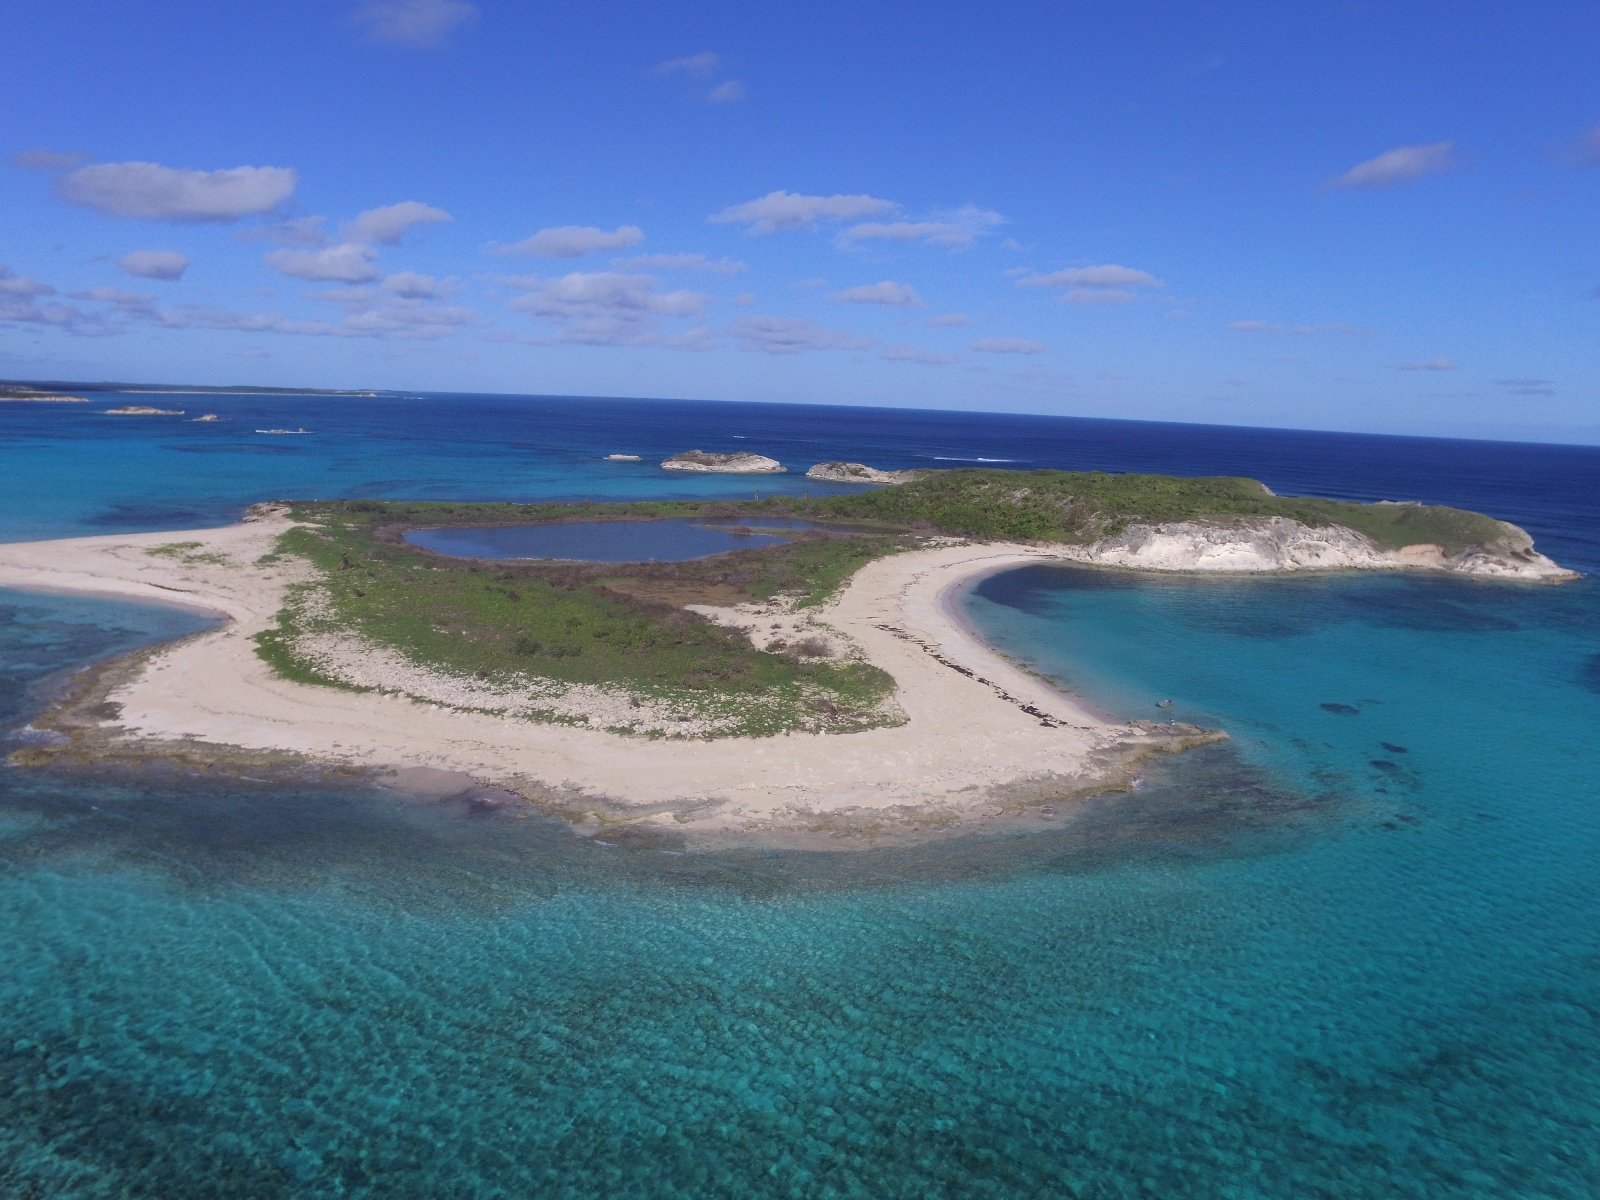 Private Island for Sale at High Cay, A Tranquil, Beautiful, Private Island San Salvador, Bahamas